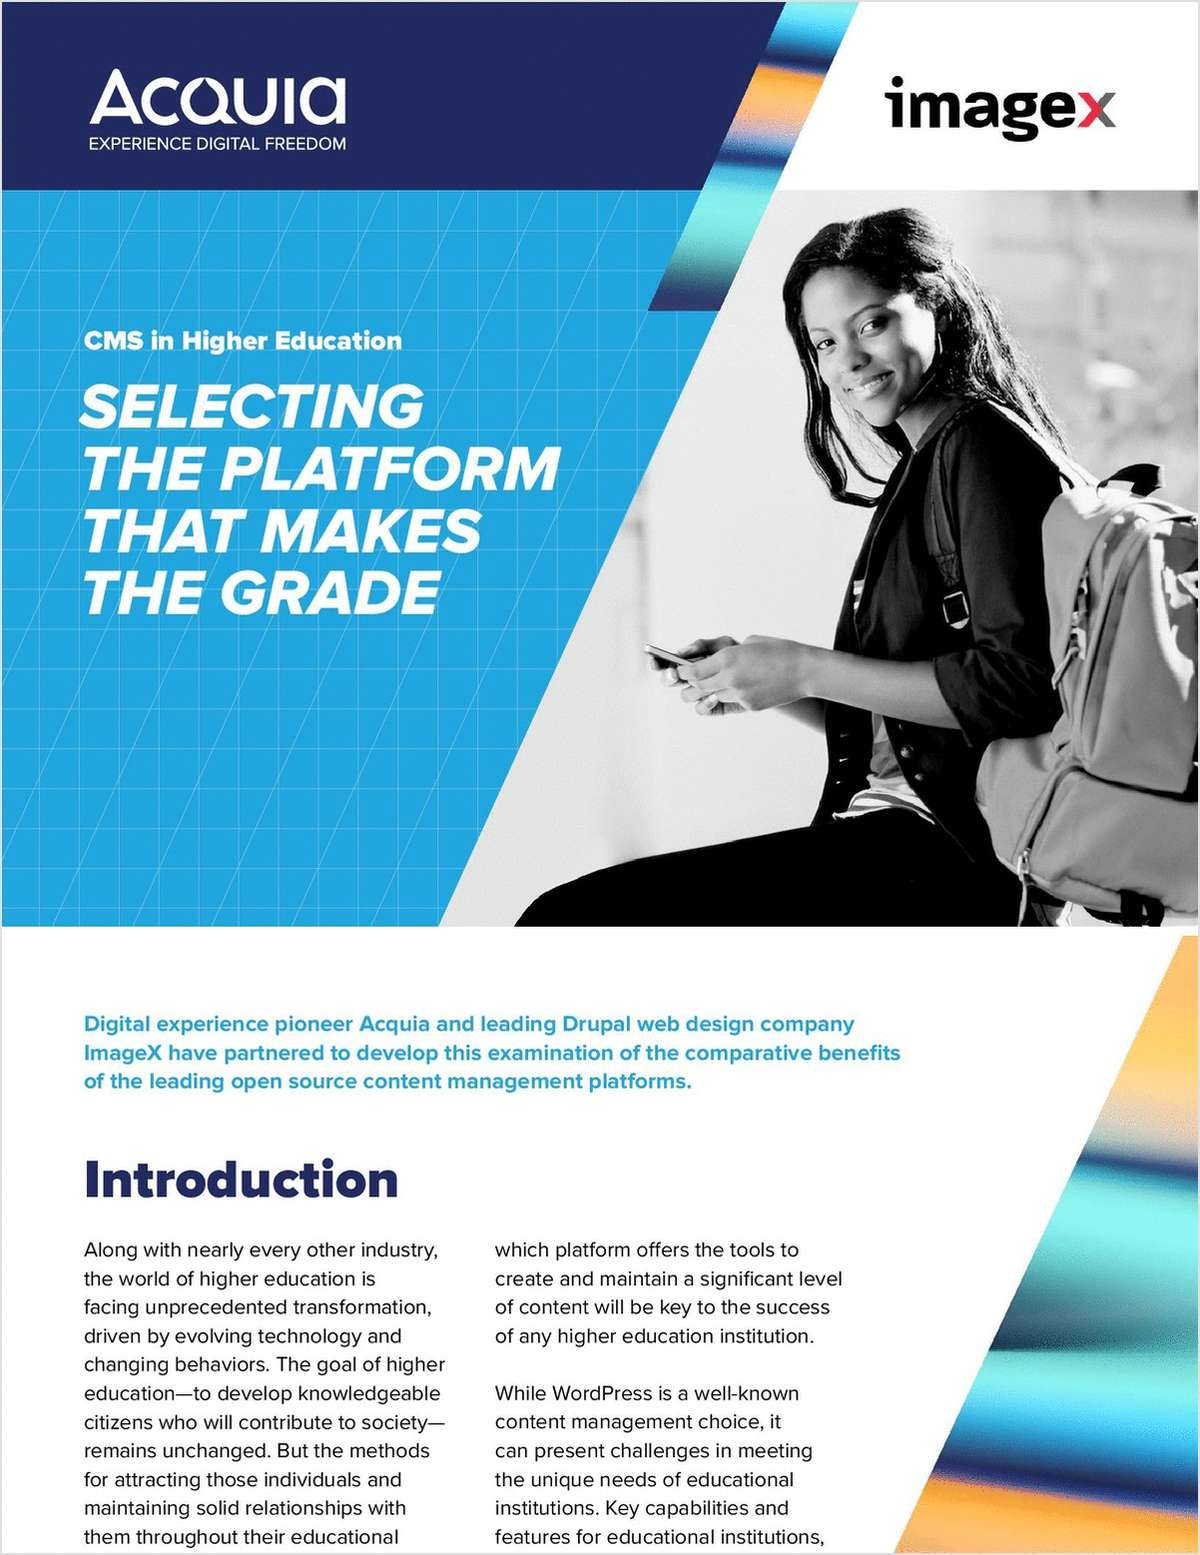 Content Management Systems in Higher Education